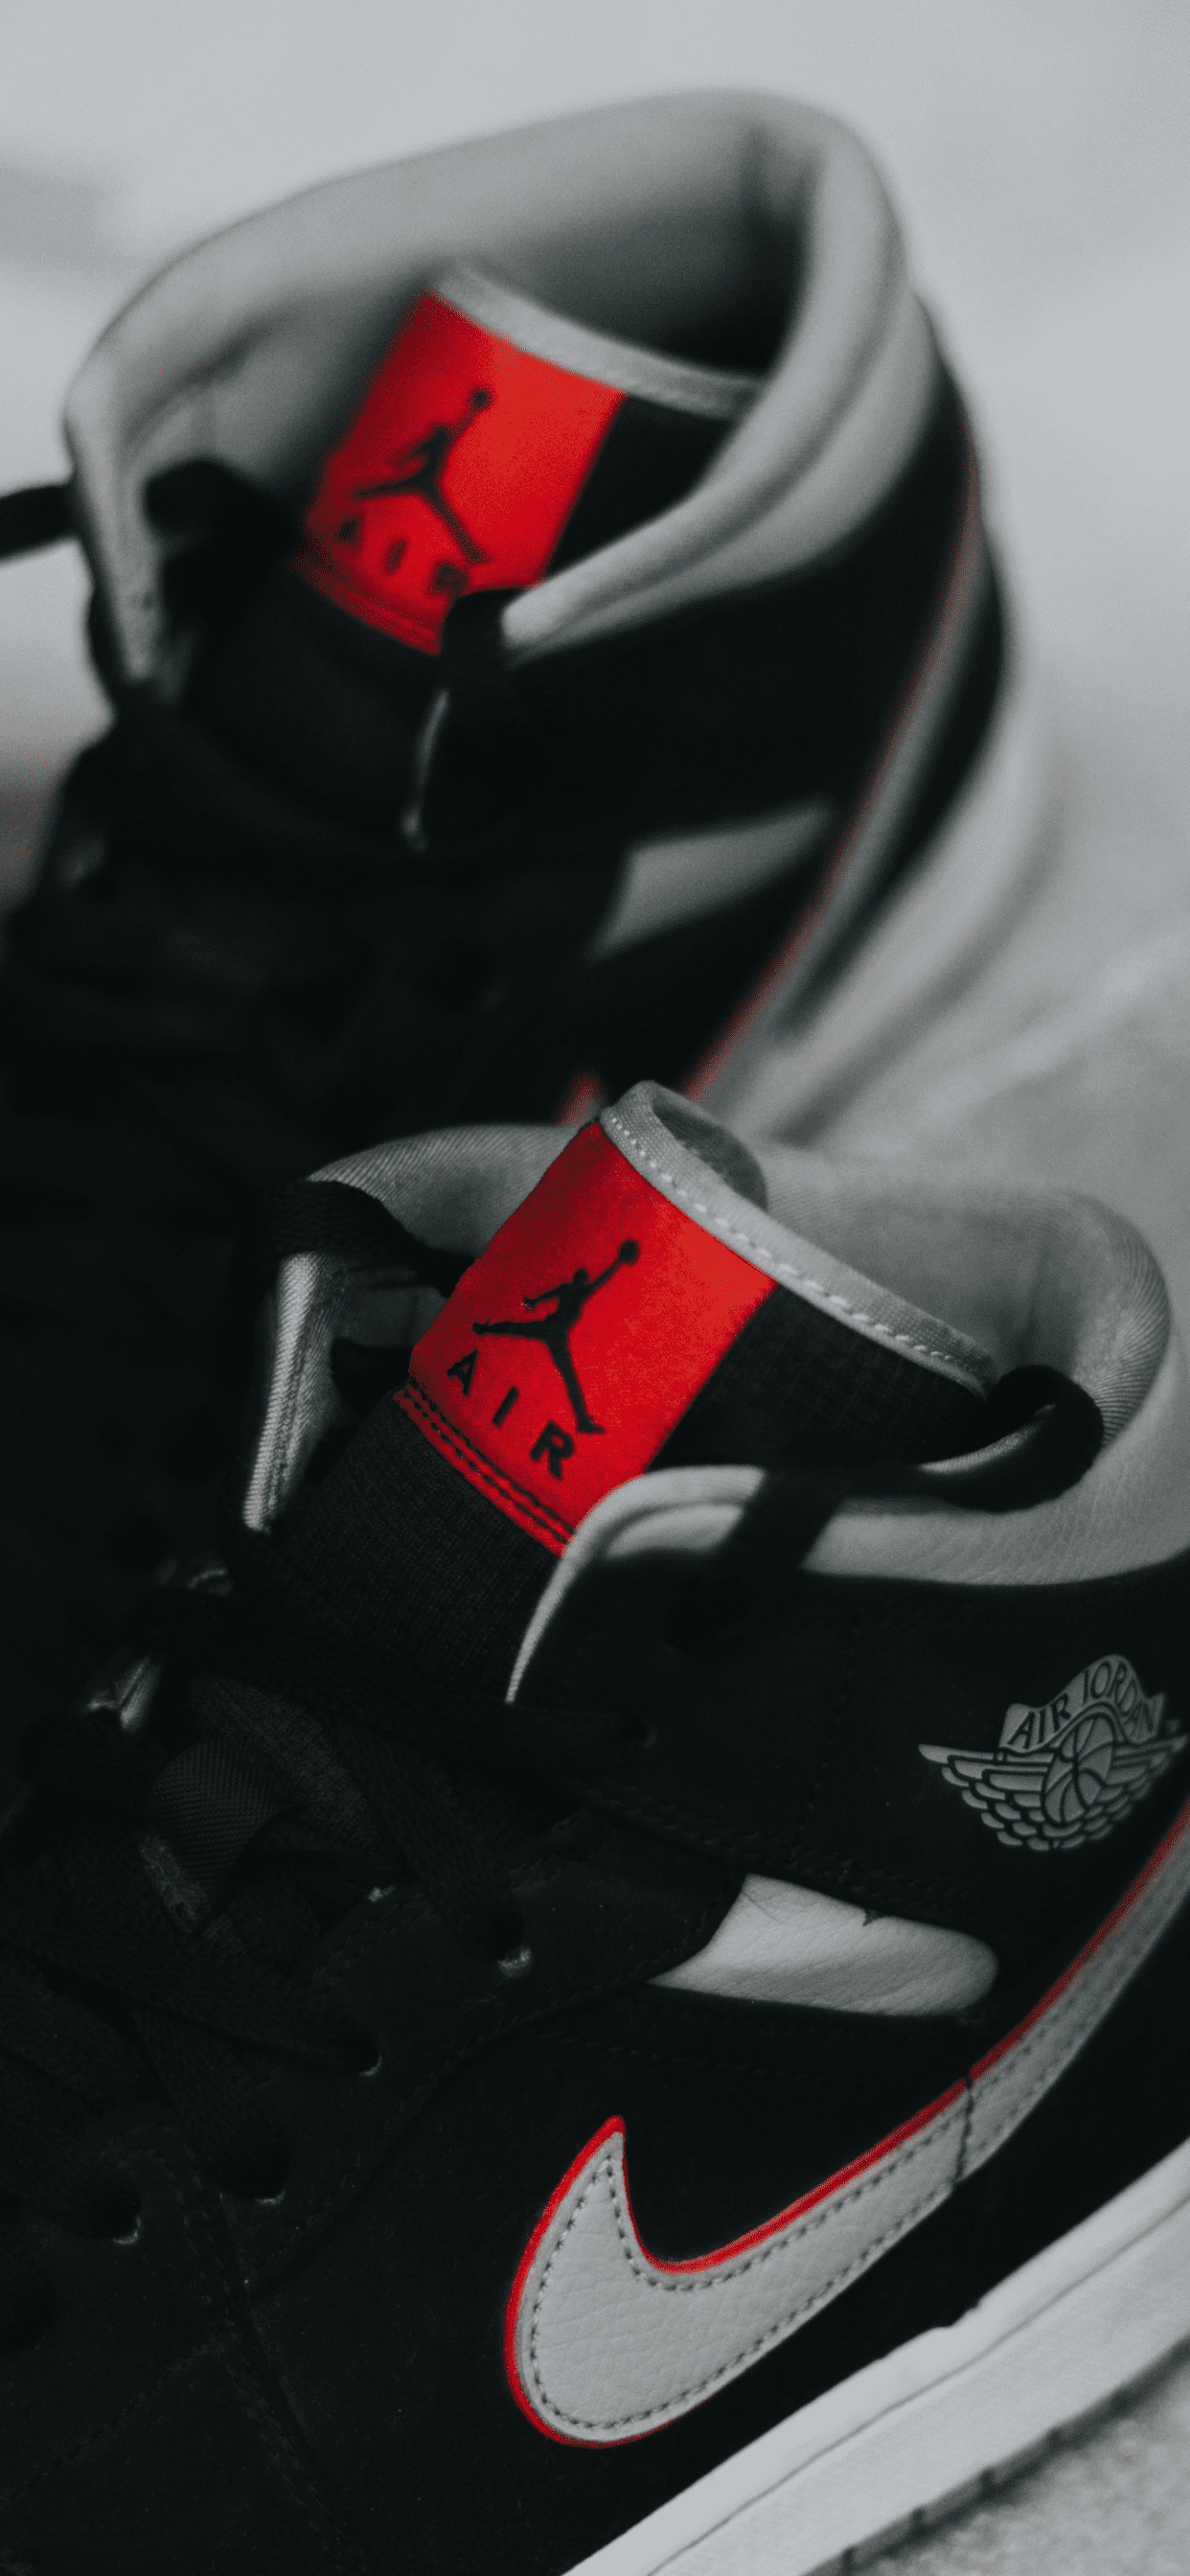 iPhone wallpapers shoes jordan nike air Jordan